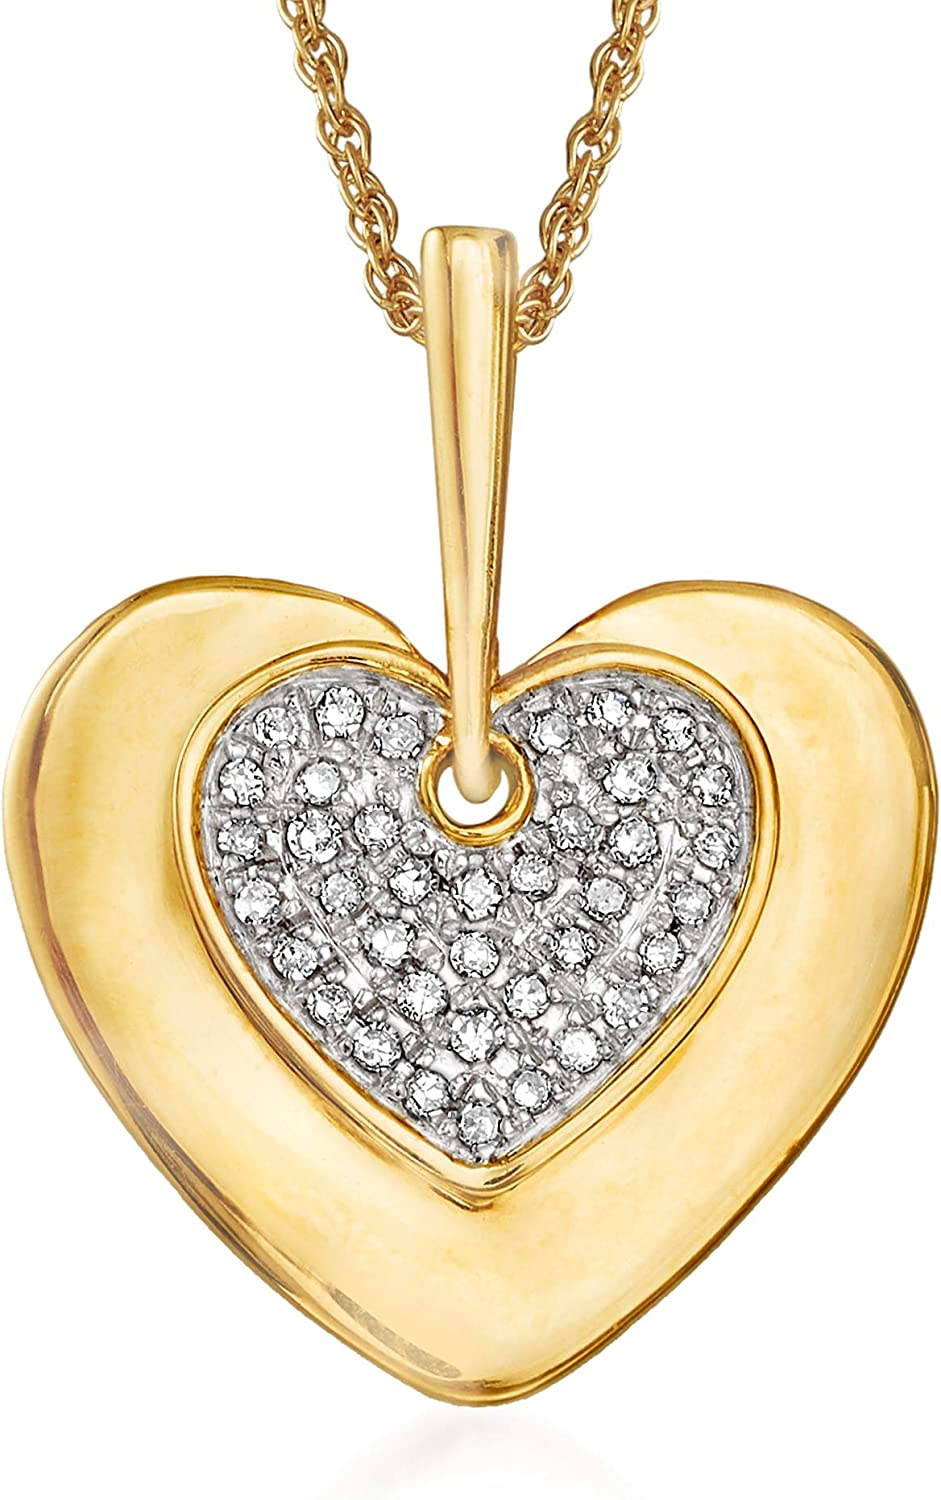 Ross-Simons 0.10 ct. t.w. Diamond Indefinitely 5 ☆ very popular in Necklace Pendant 14kt Heart